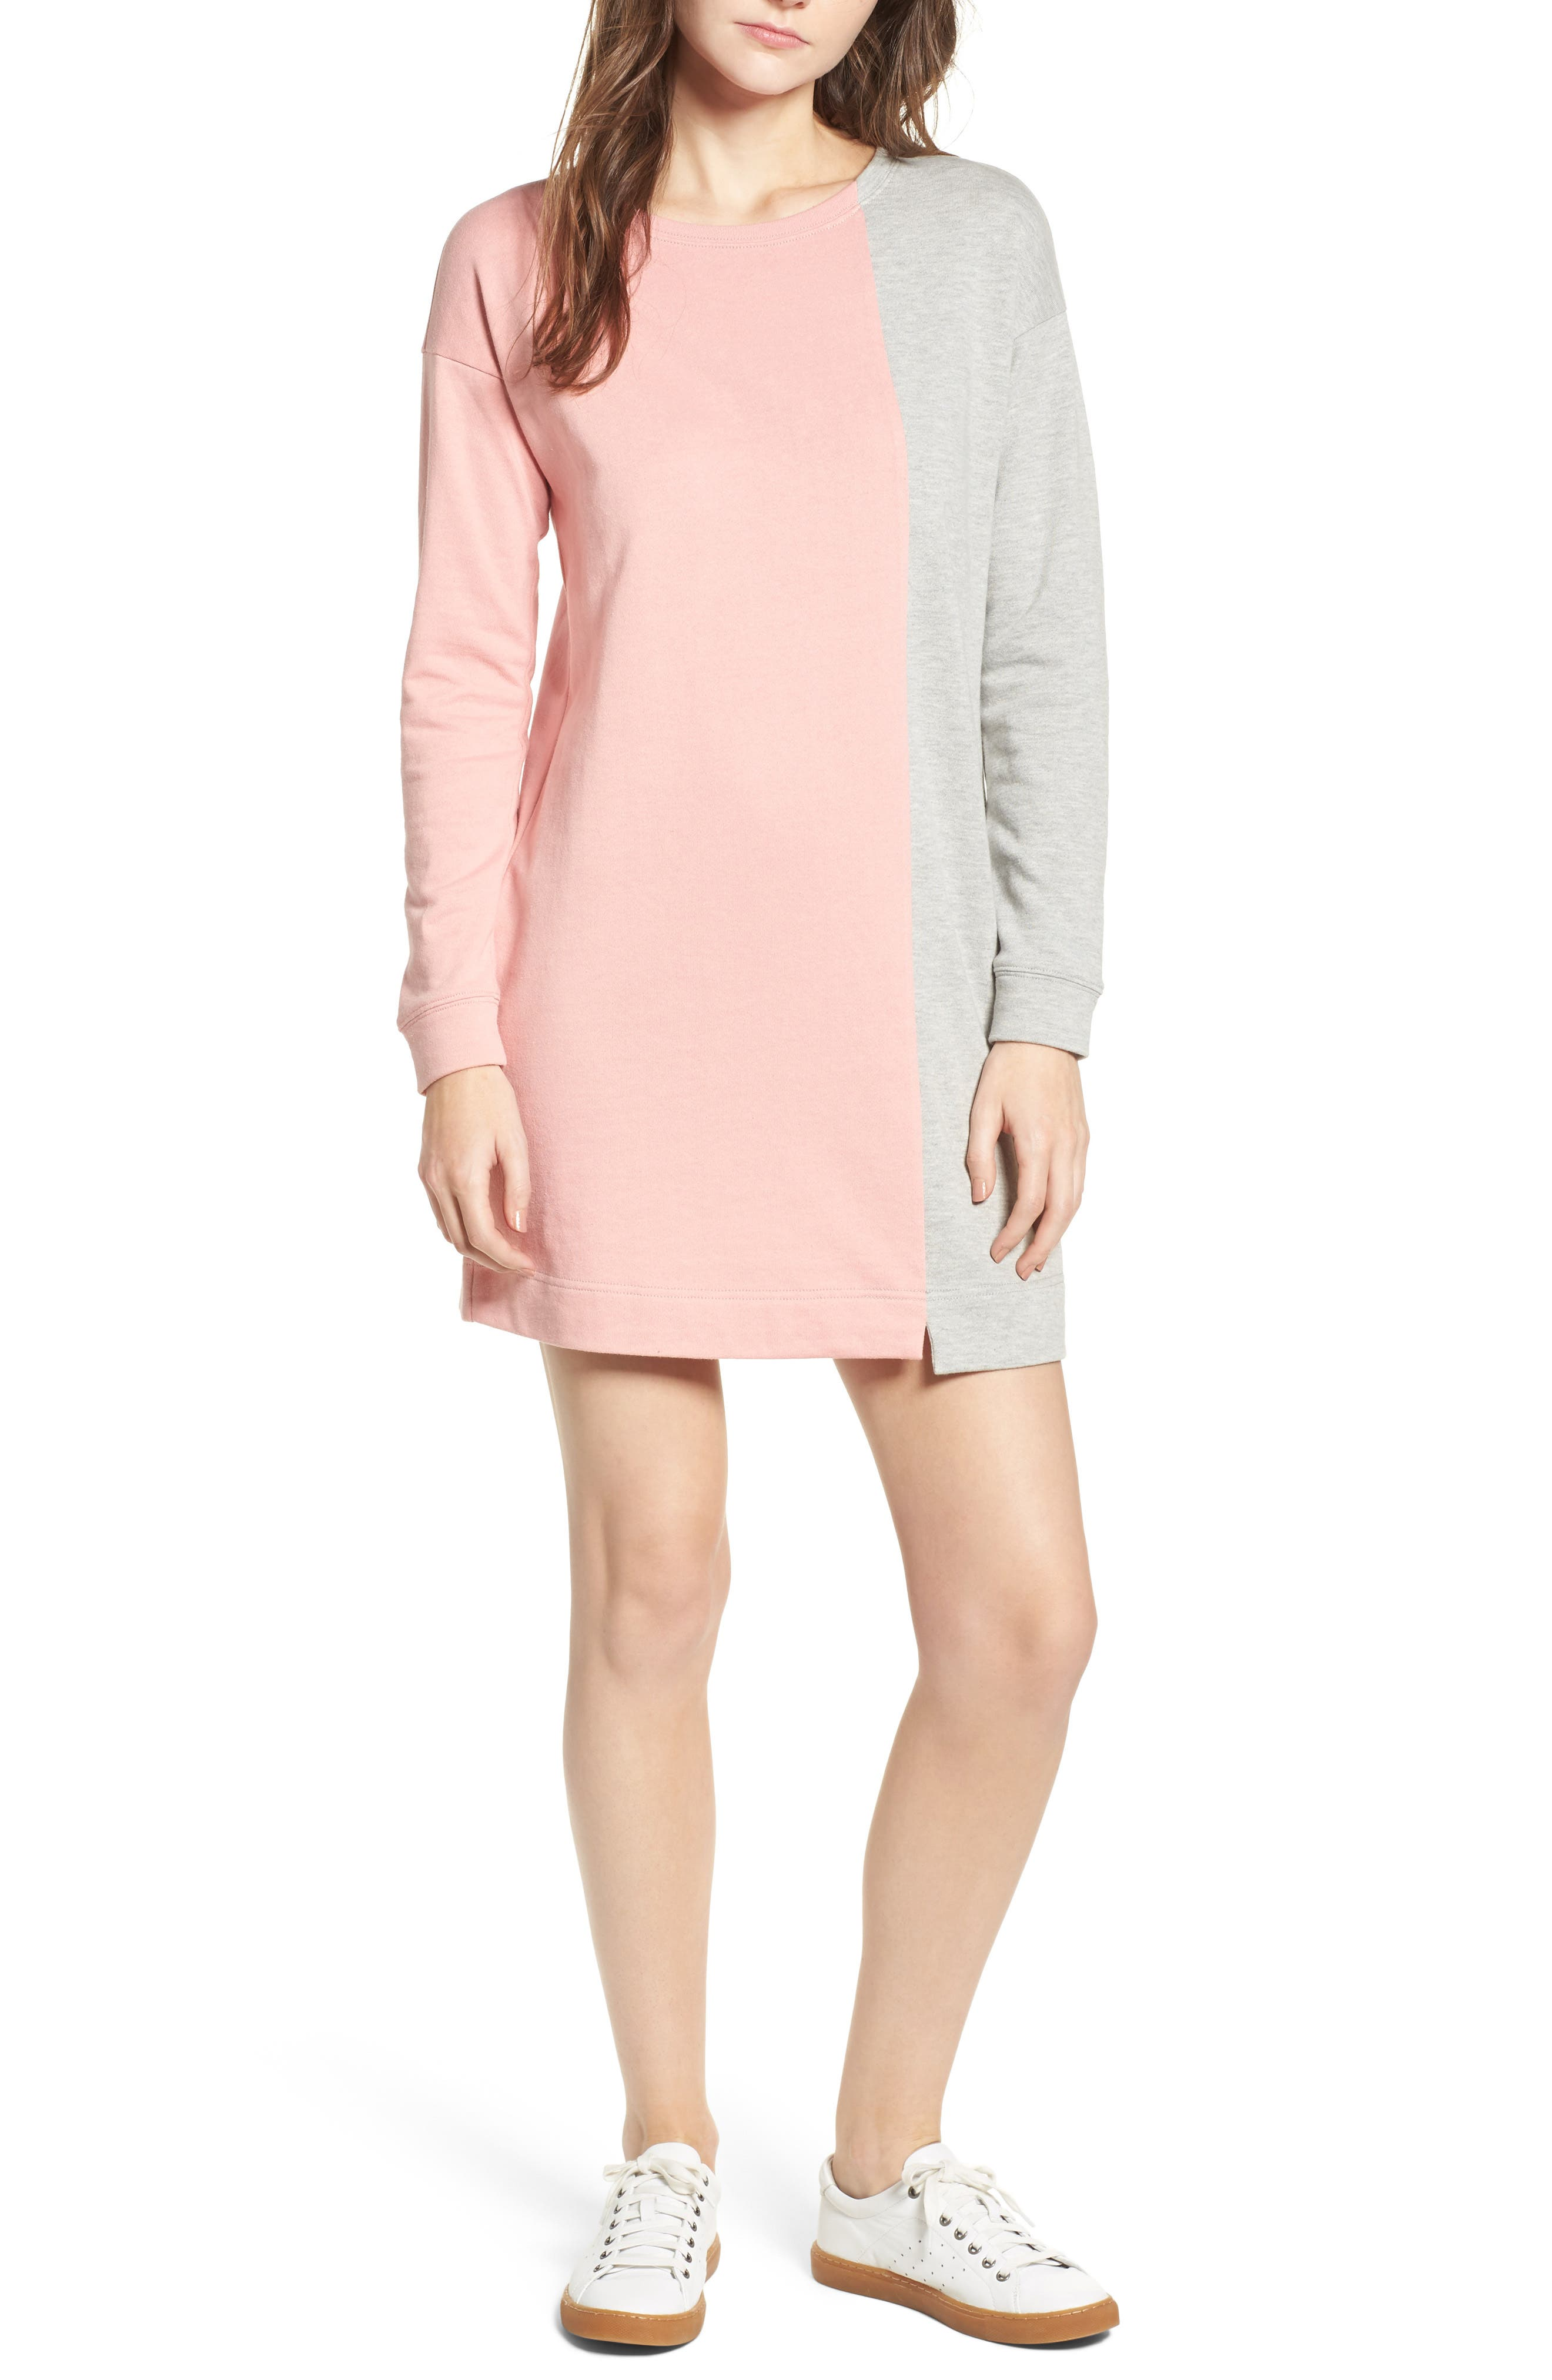 Alternate Image 1 Selected - Socialite Colorblock Sweatshirt Dress